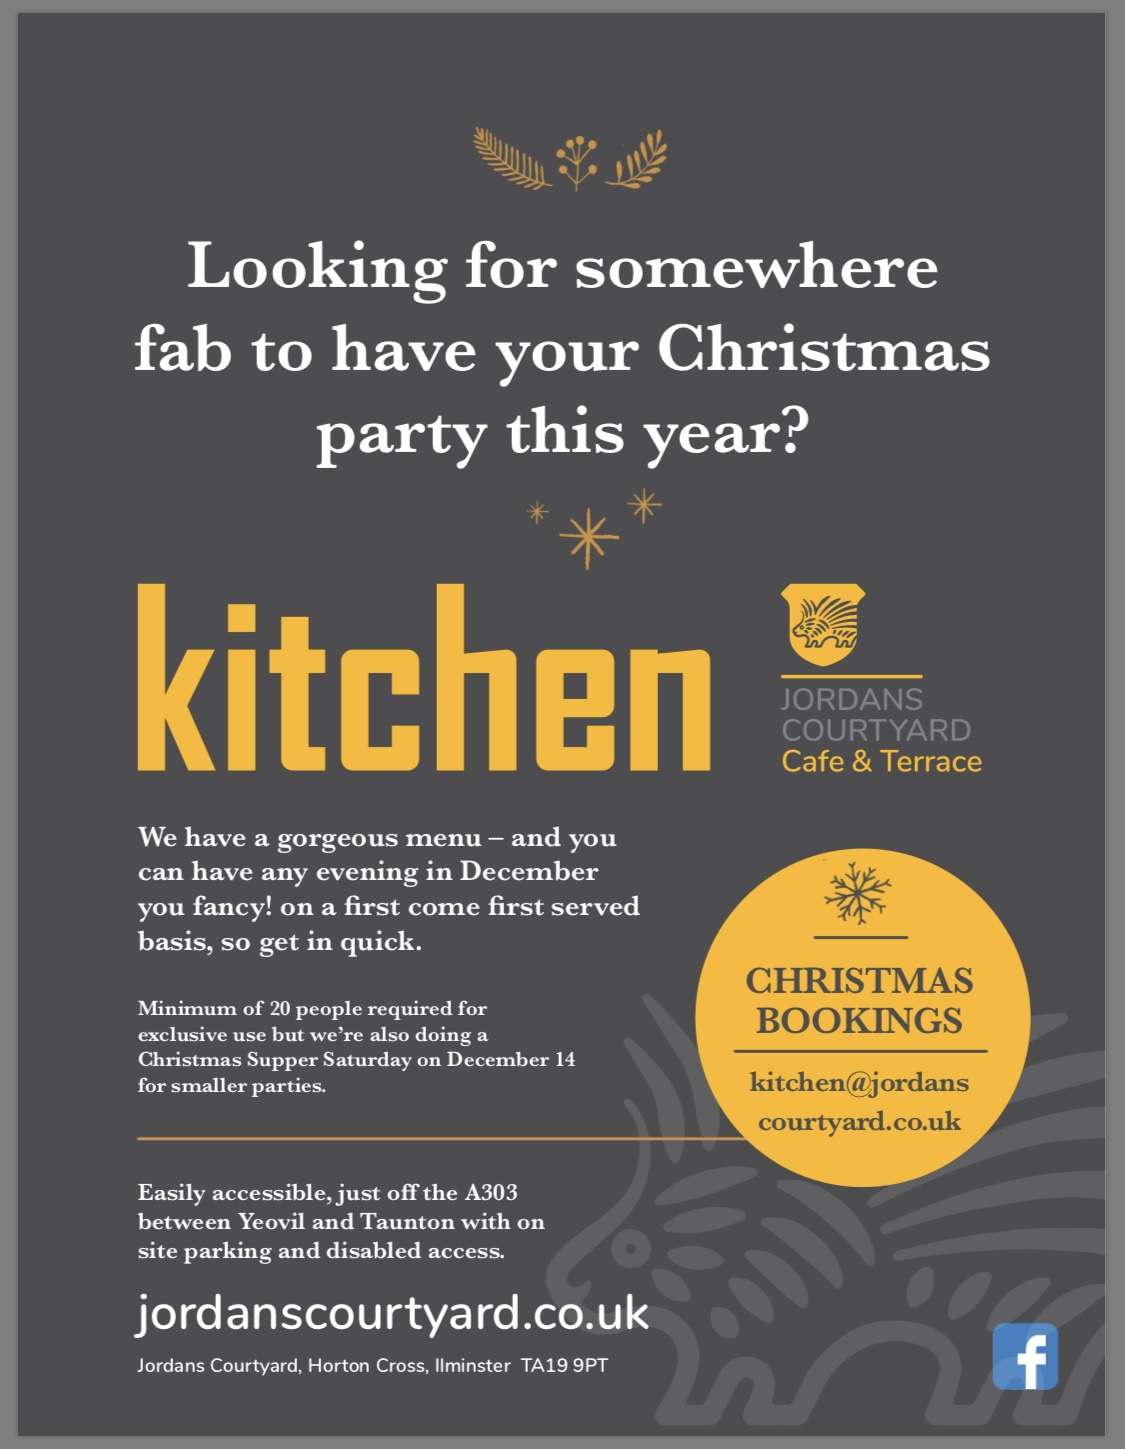 Christmas Parties at KItchen at JOrdans Courtyard